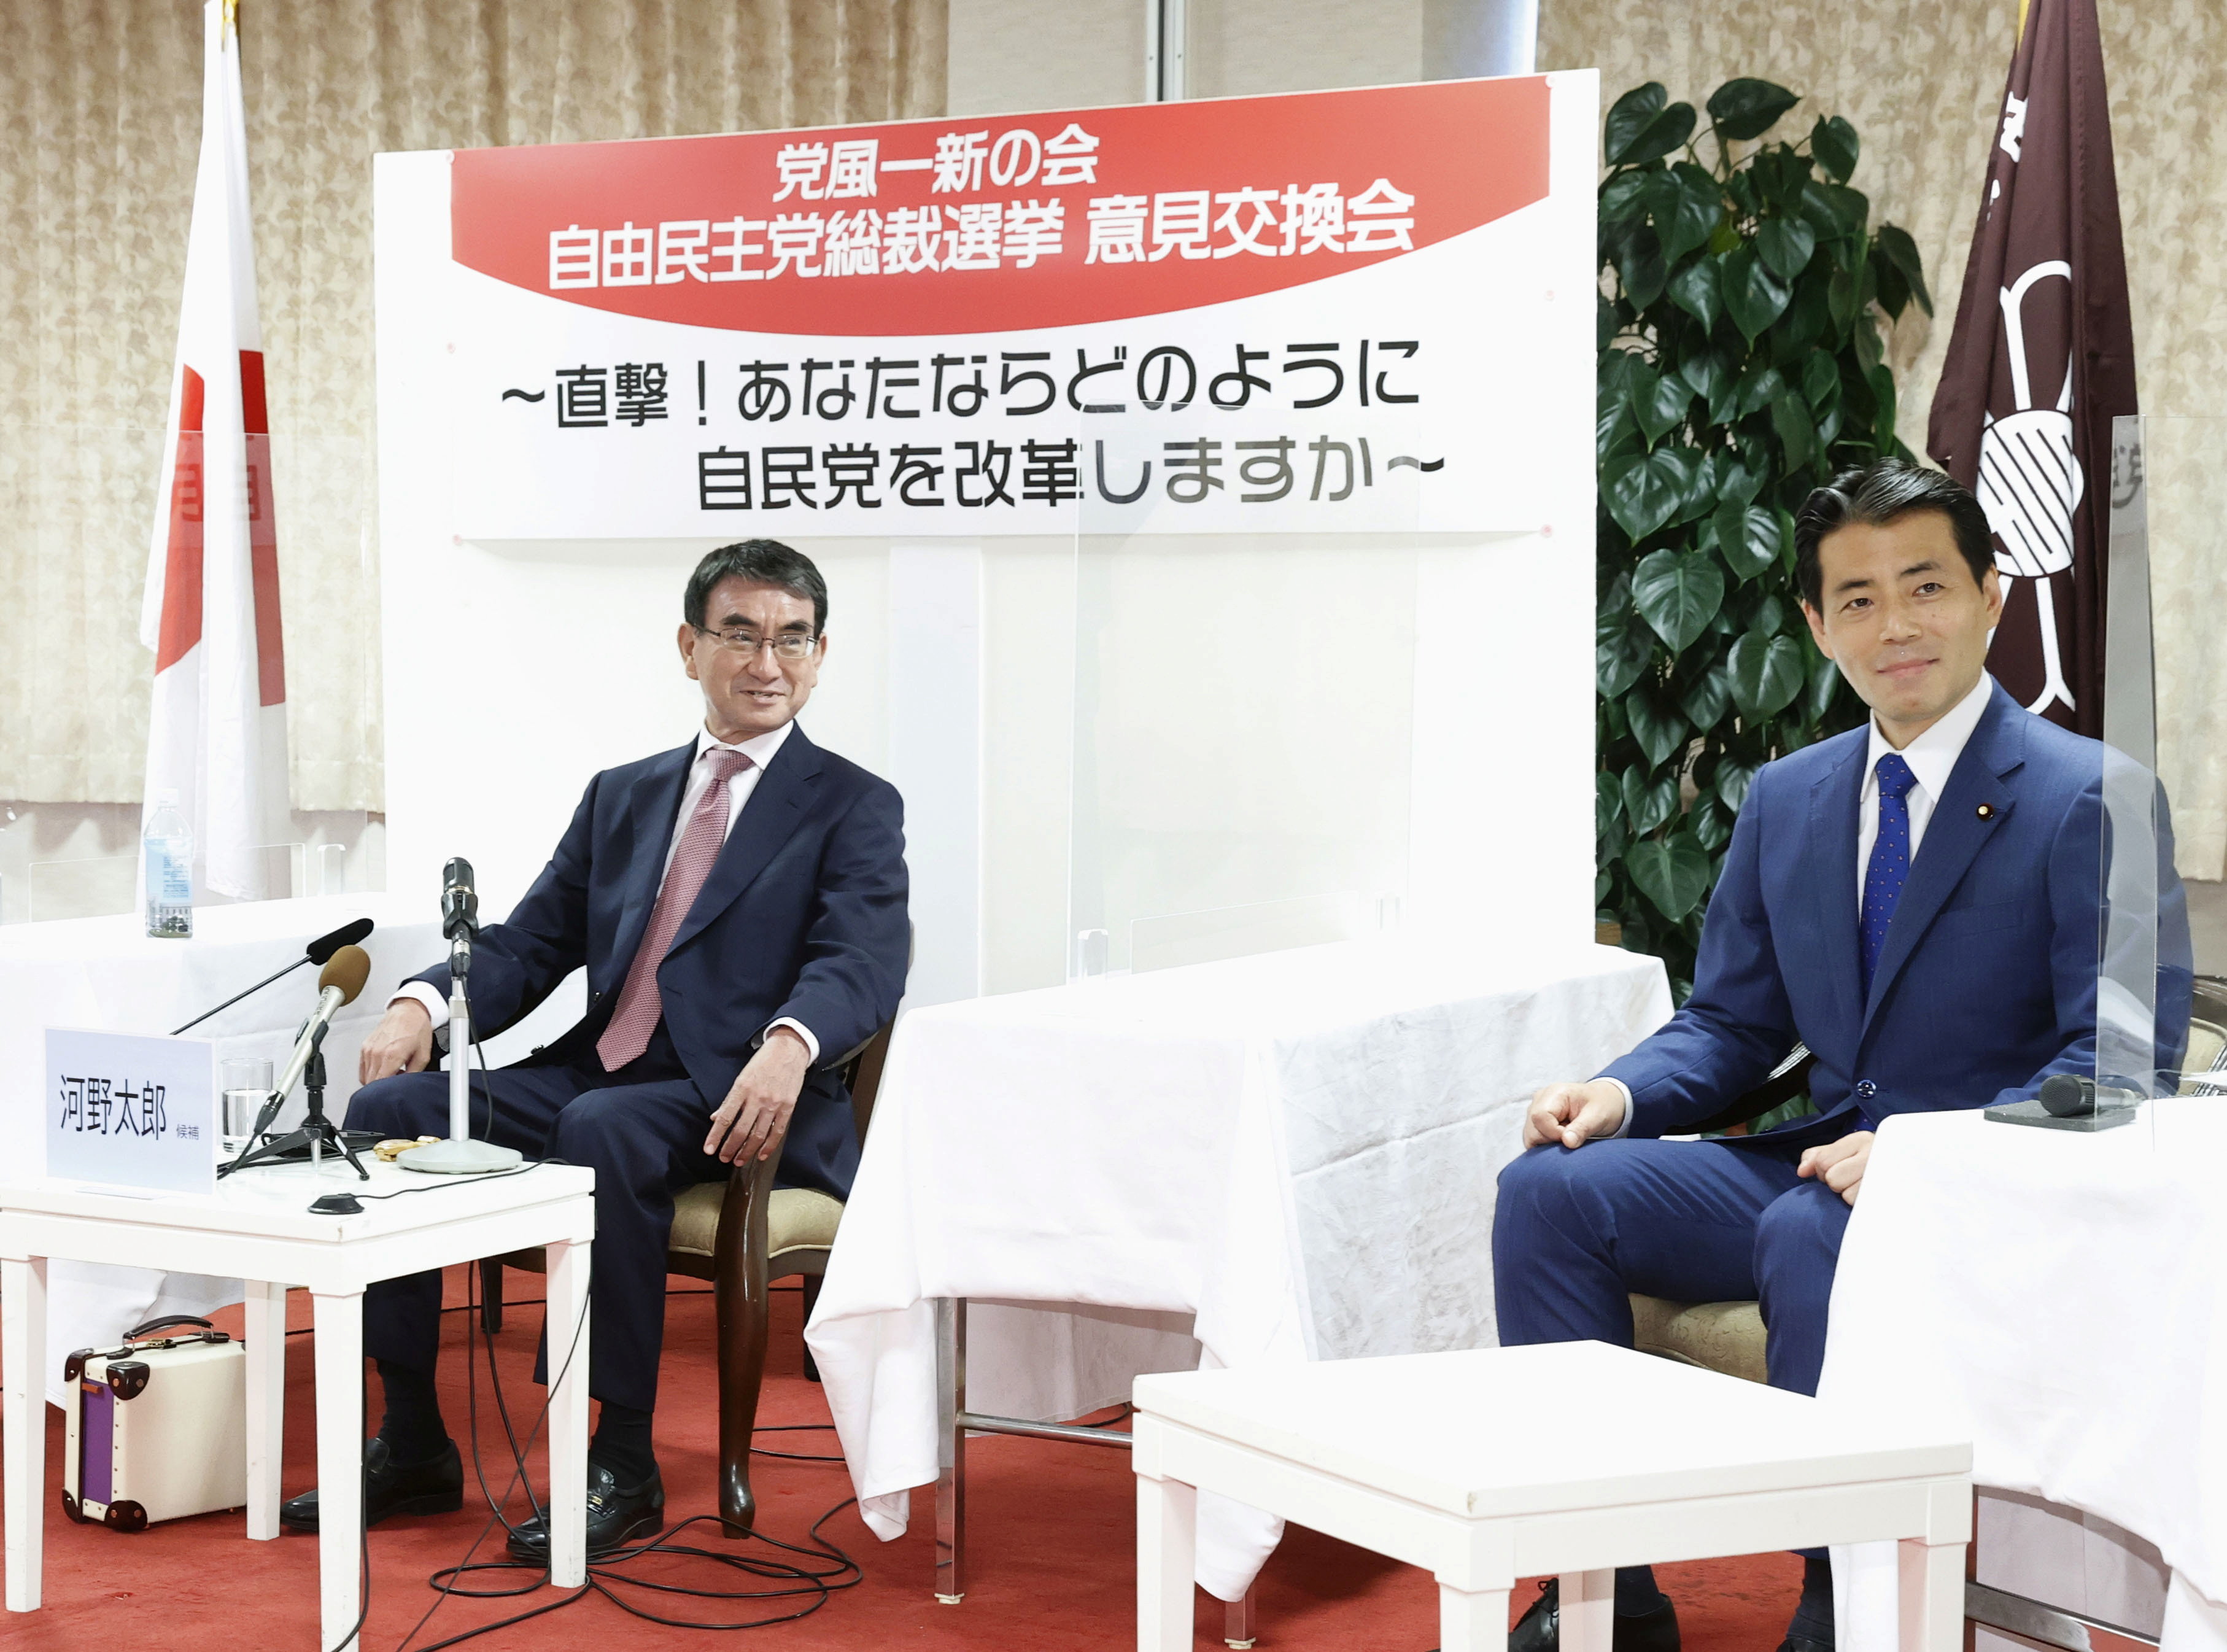 A candidate for the presidential election of the ruling Liberal Democratic Party (LDP), Taro Kono, the cabinet minister in charge of vaccinations, meets with LDP lawmaker Tatsuo Fukuda during their discussion meeting in Tokyo, Japan September 21, 2021, in this photo taken by Kyodo. Picture taken September 21, 2021. Mandatory credit Kyodo/via REUTERS